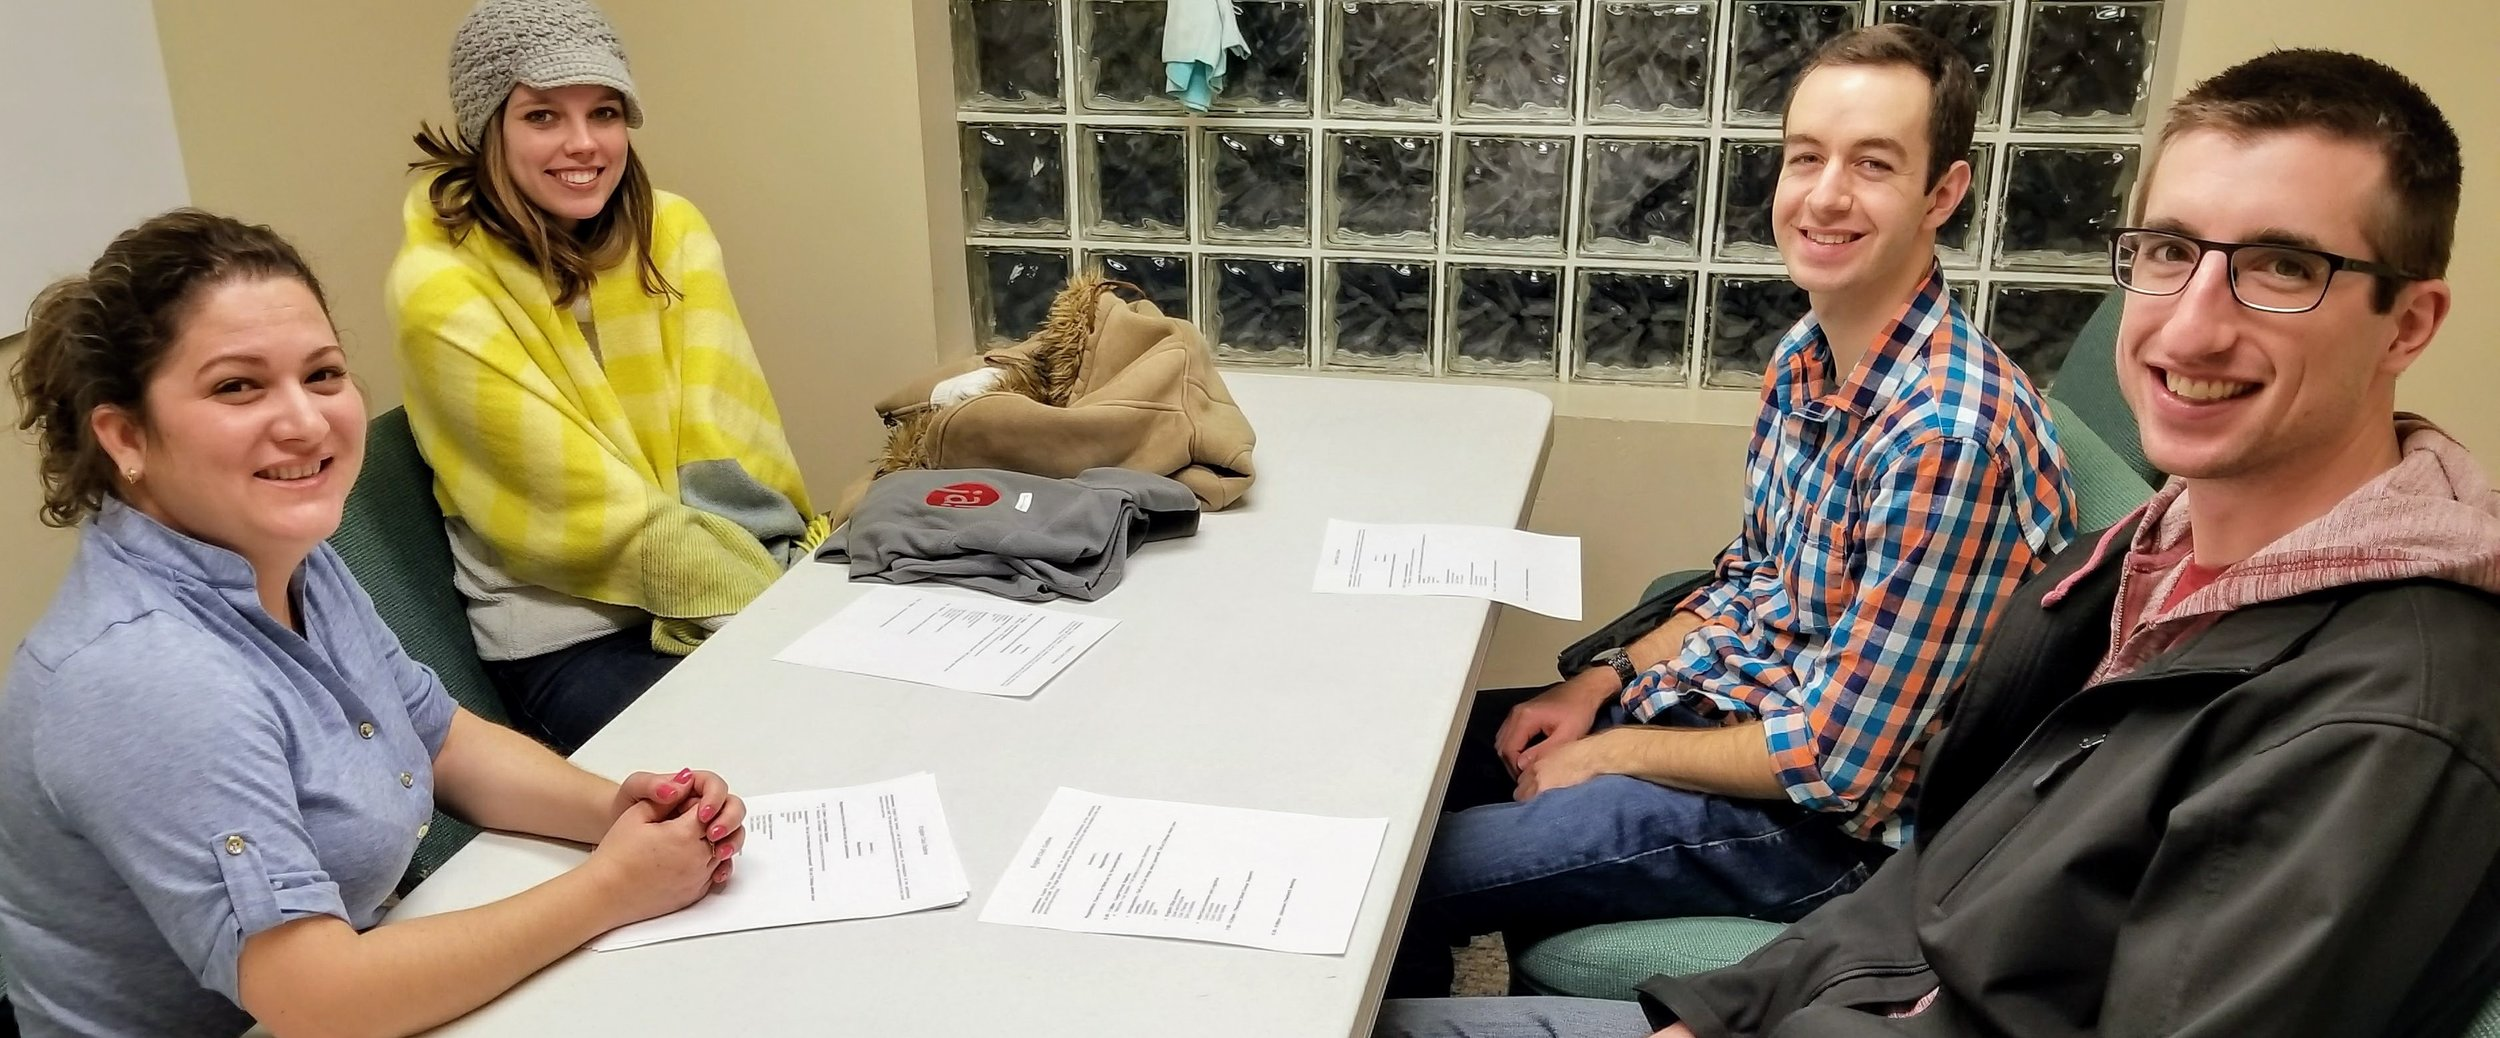 Cody (far right) and Joanna (yellow sweater) participate in a planning session for English Club.